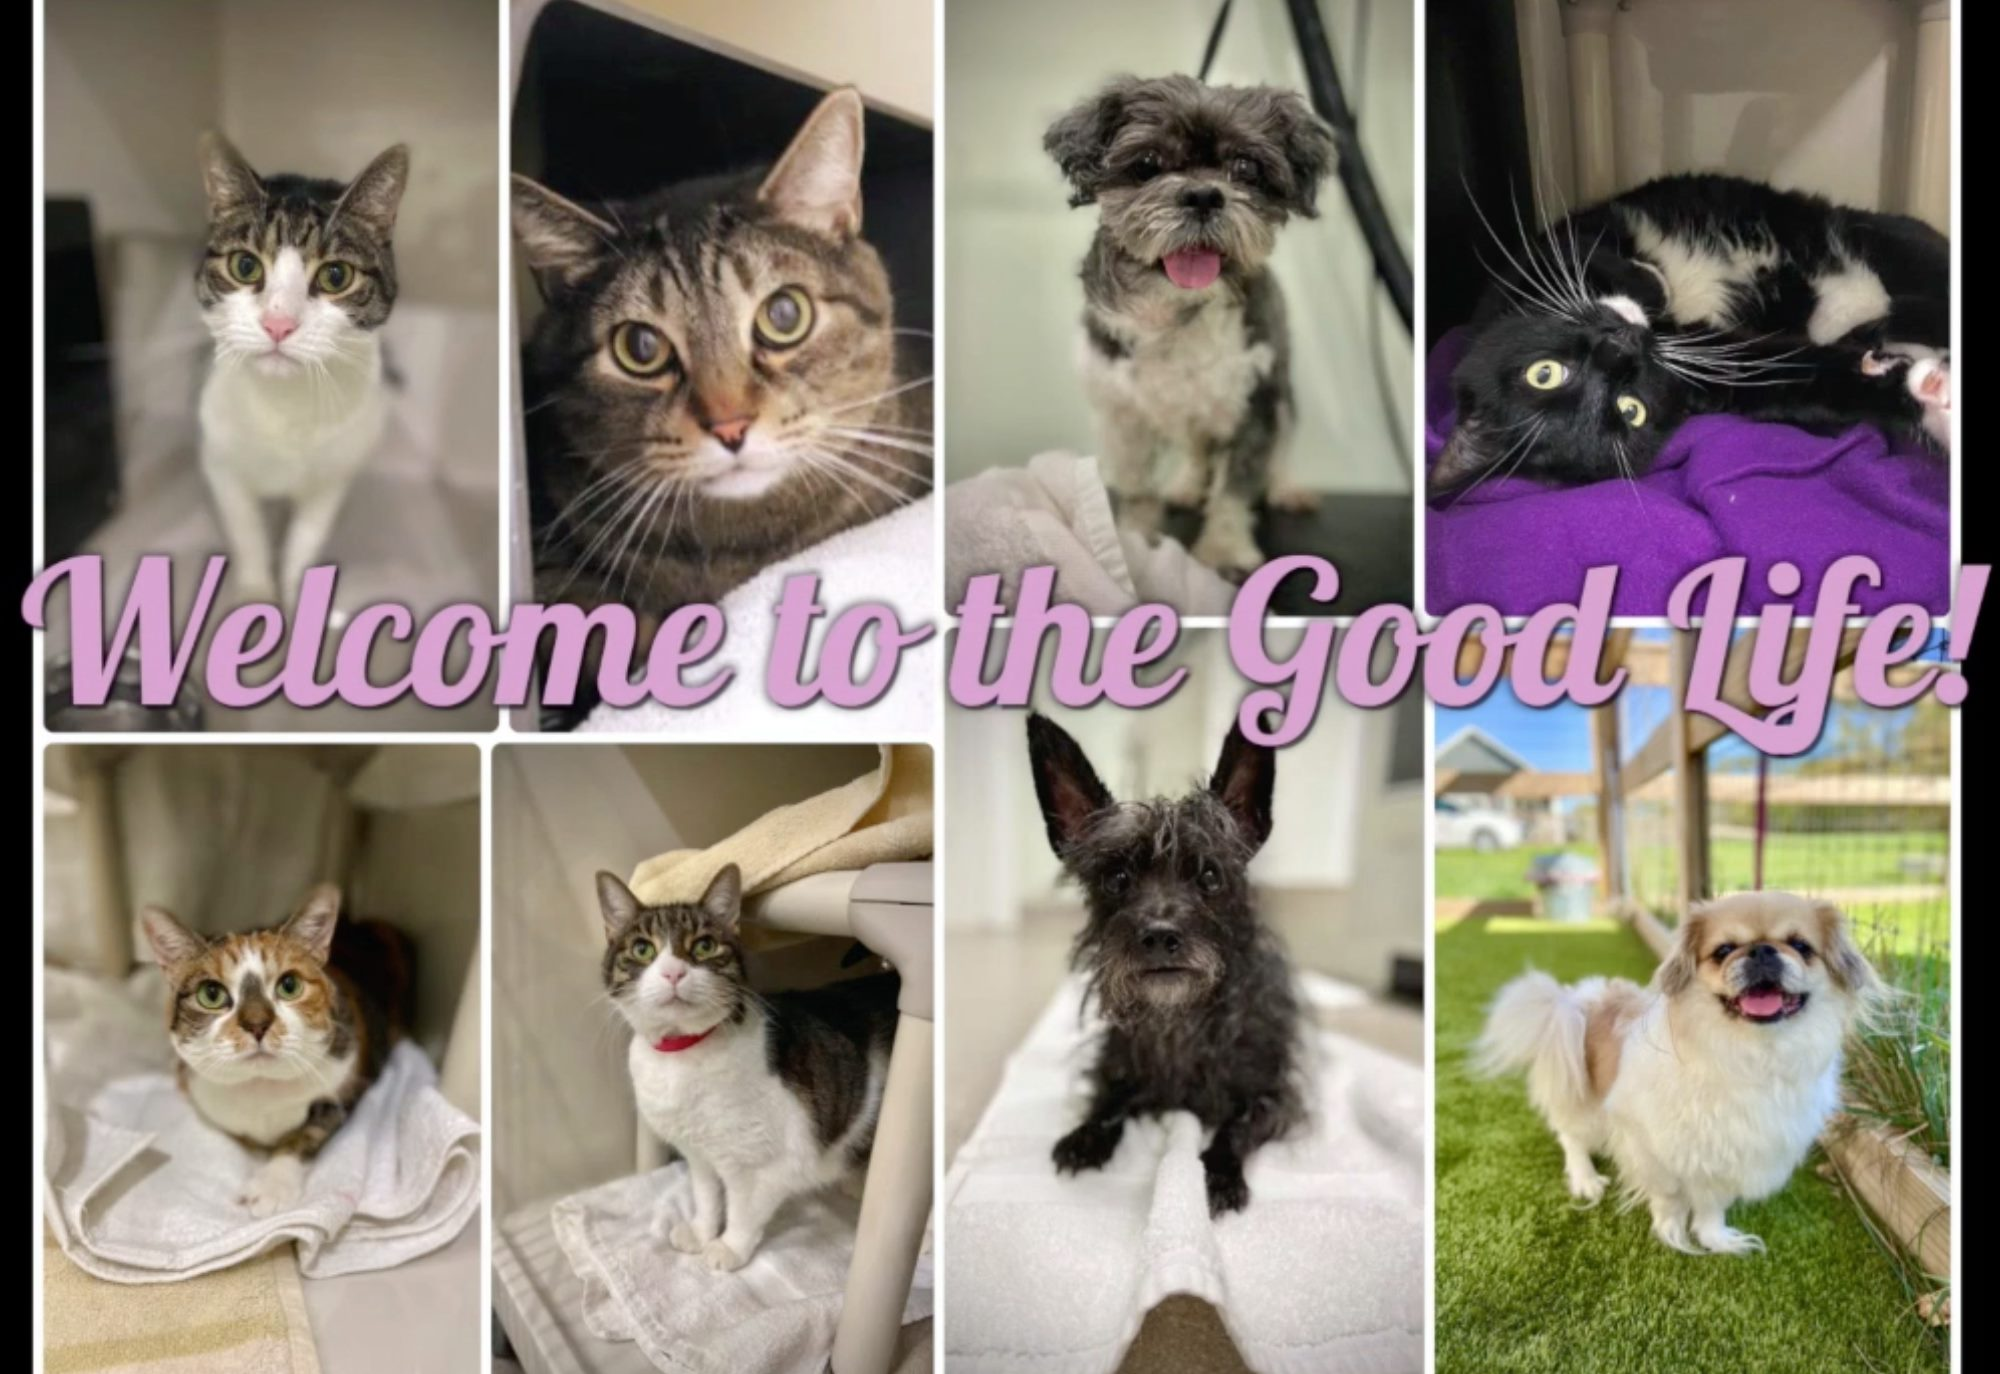 New Adoptable Dogs and cats